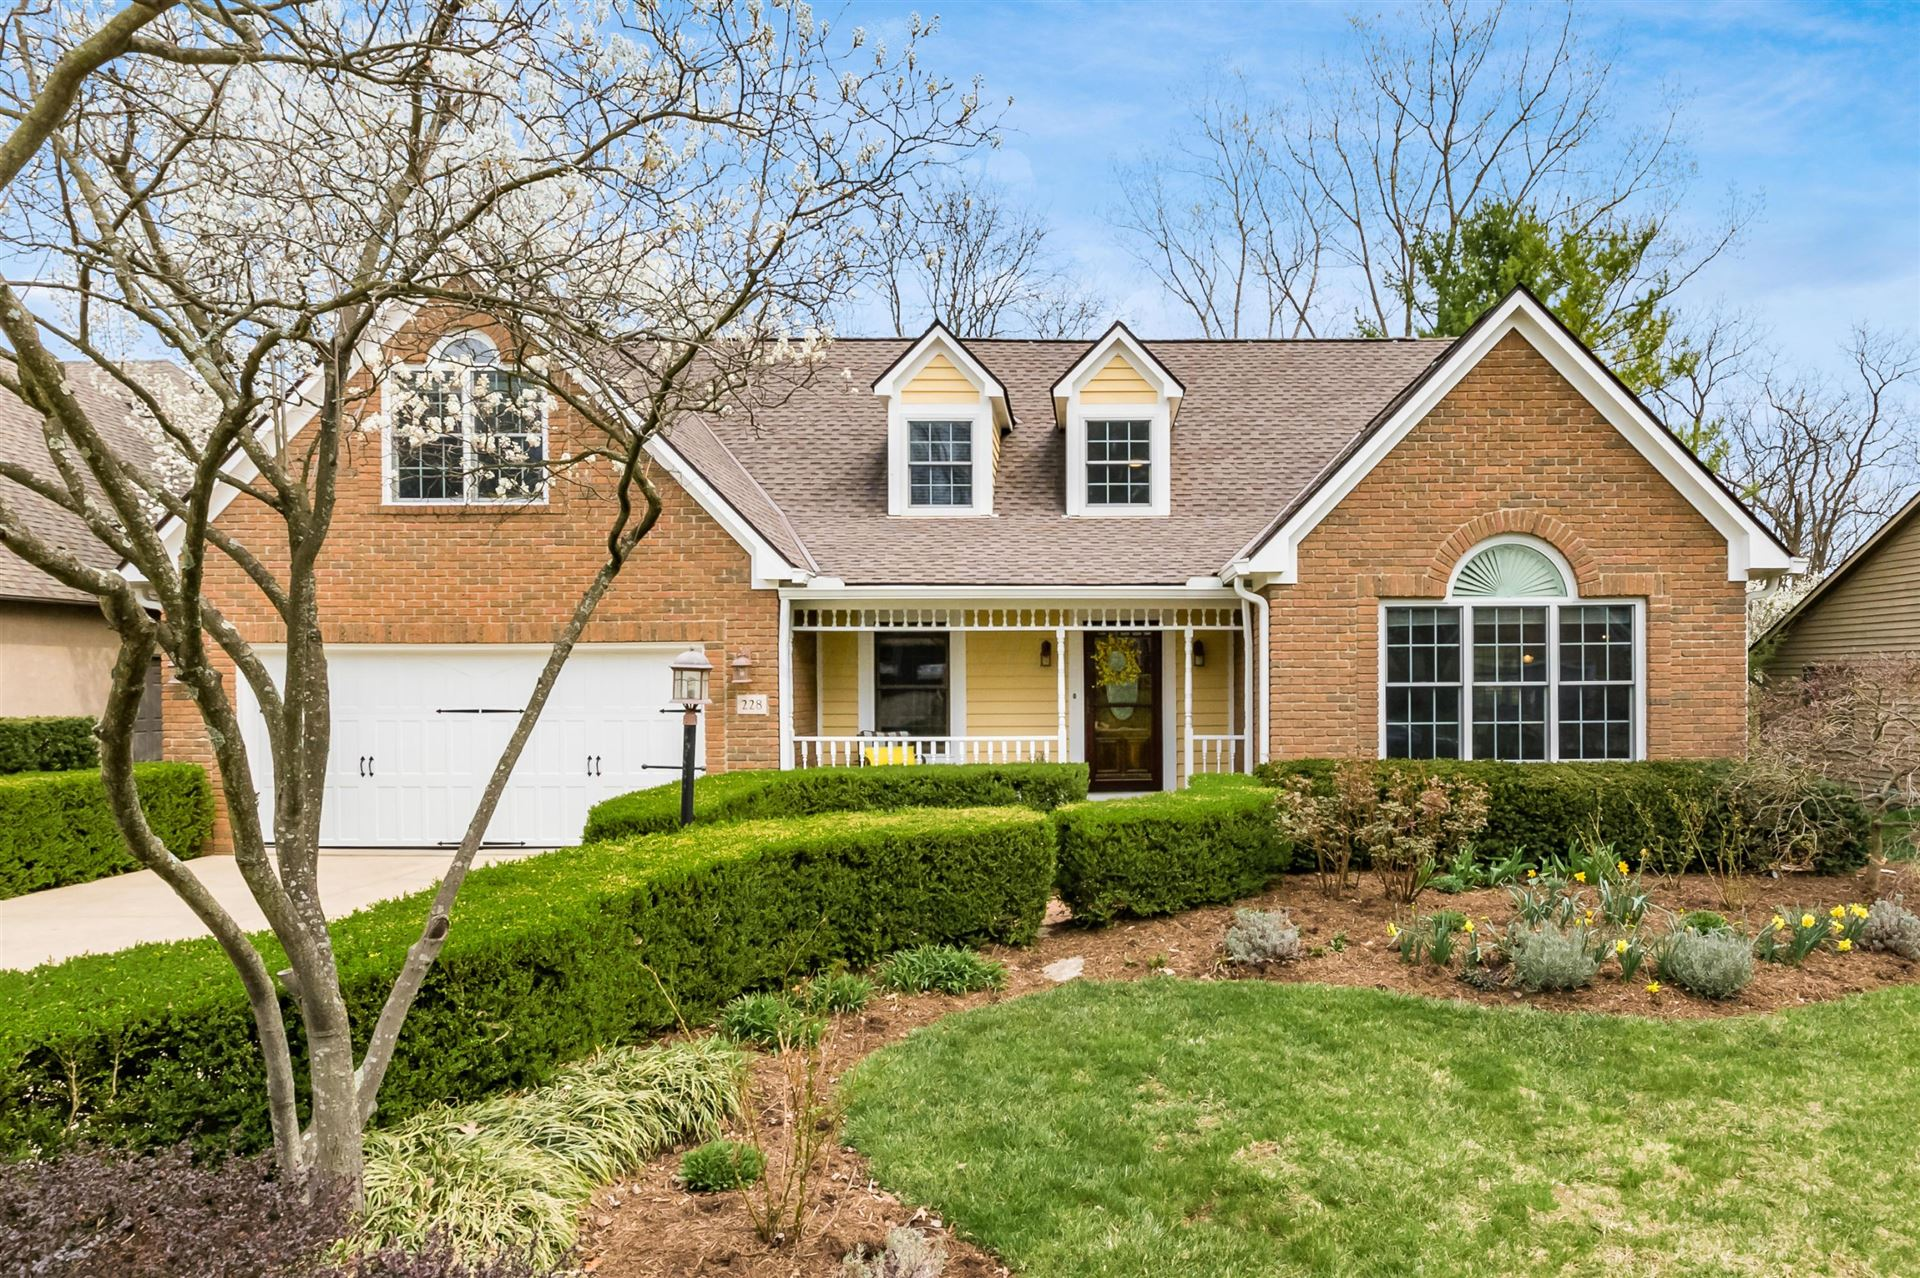 Photo for 228 Luke Court, Westerville, OH 43081 (MLS # 221010445)